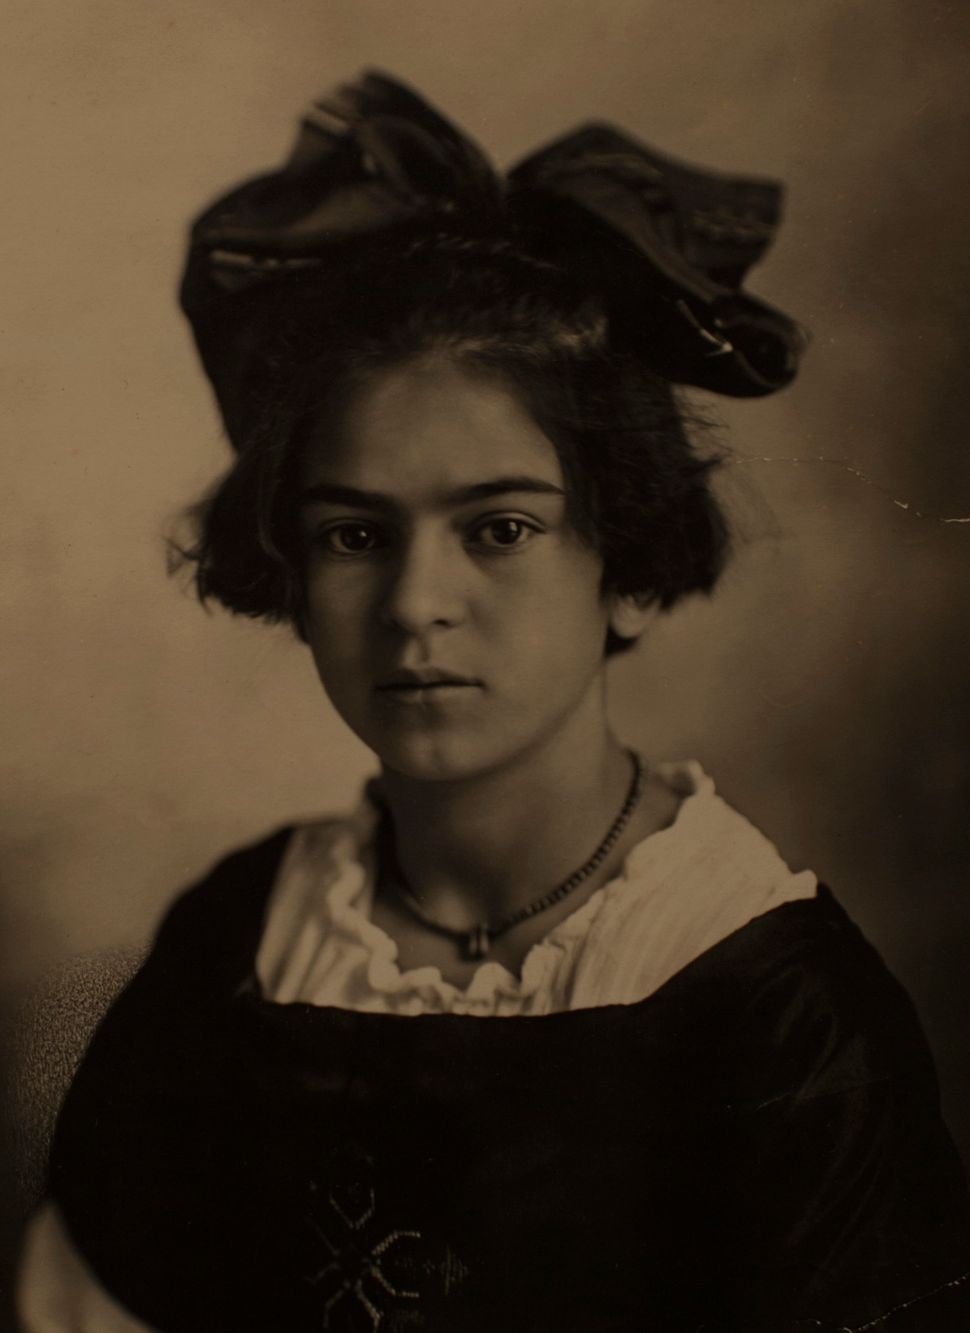 A portrait of Frida Kahlo by her father, Guillermo Kahlo, is displayed at the Frida Kahlo museum in Mexico City.